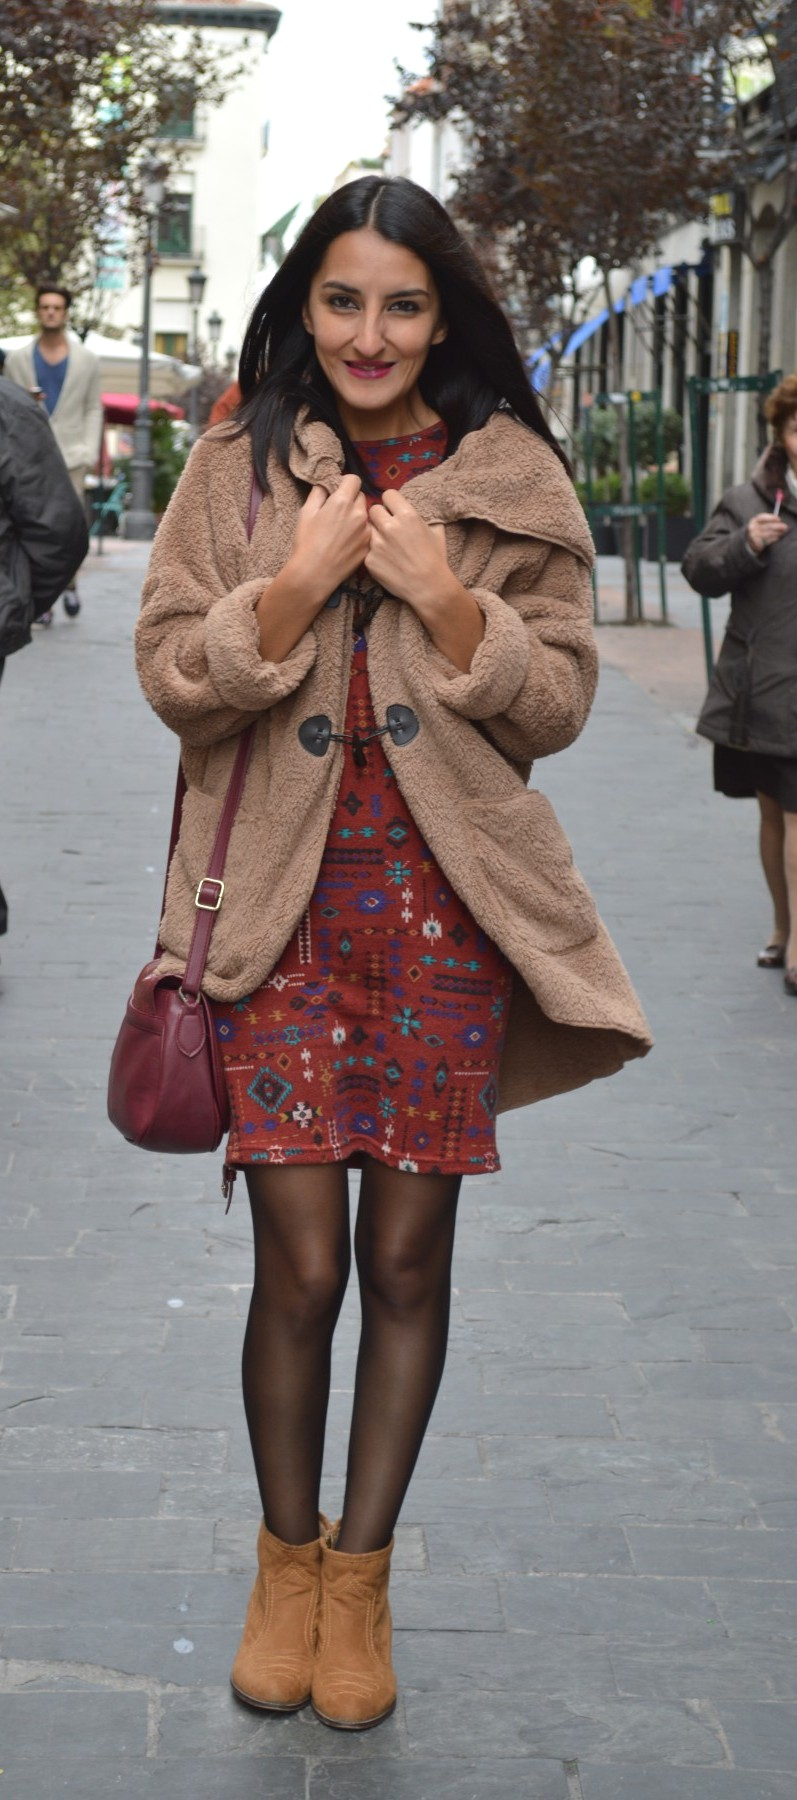 Abrigo / coat: El Rincón de Laura (new) Vestido / dress: Shana (new) Botines / booties: Bershka (old) Bolso / bag: Berska (old)